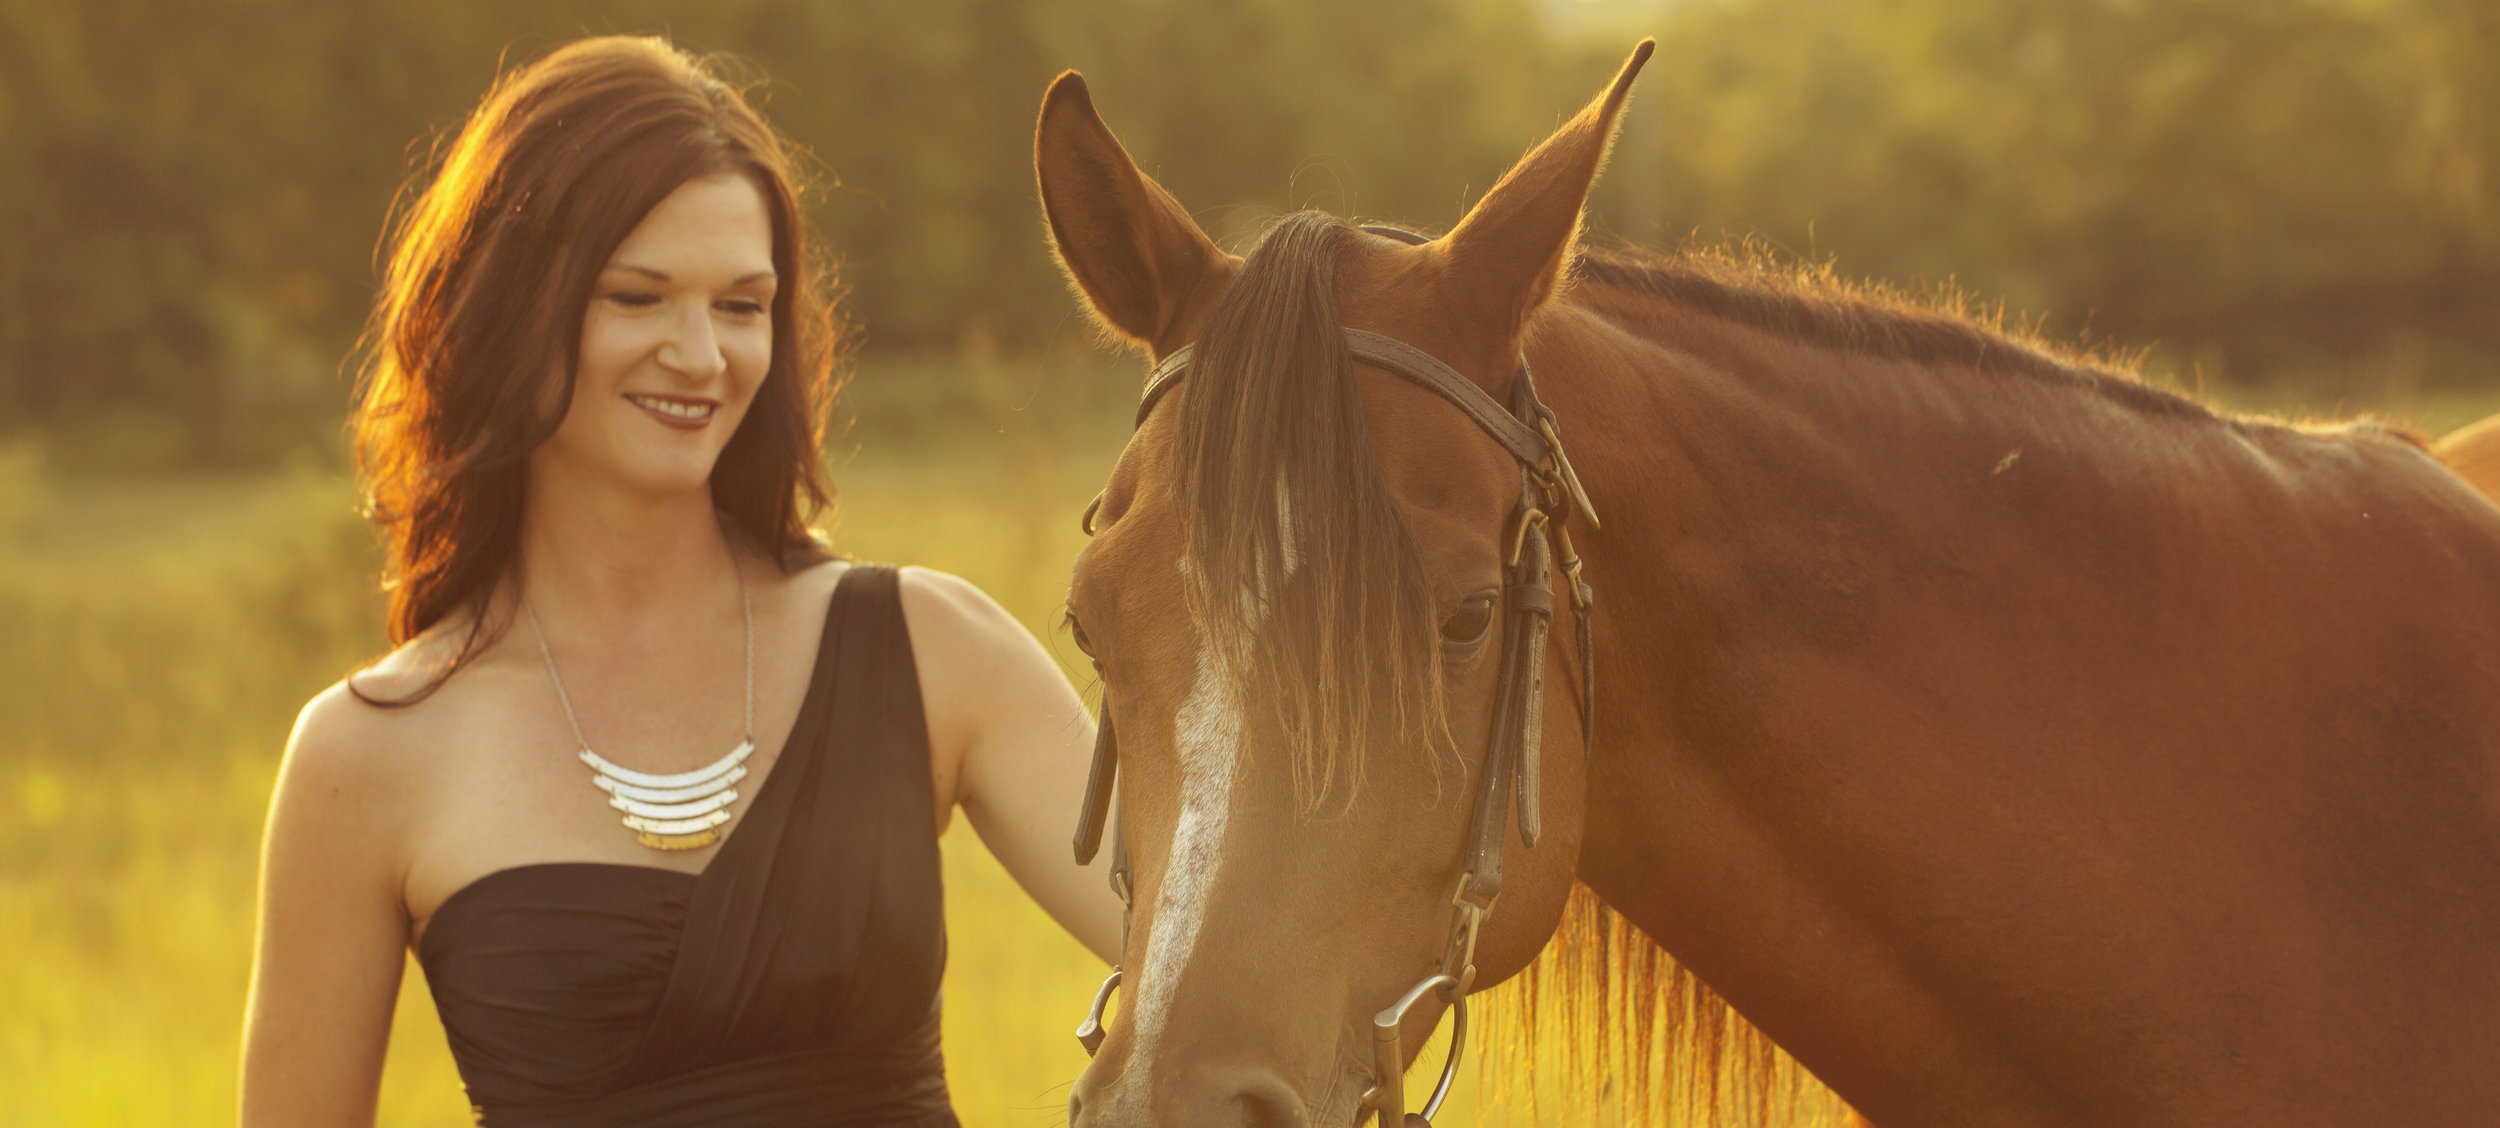 a girl and her horse 2 crop.jpg